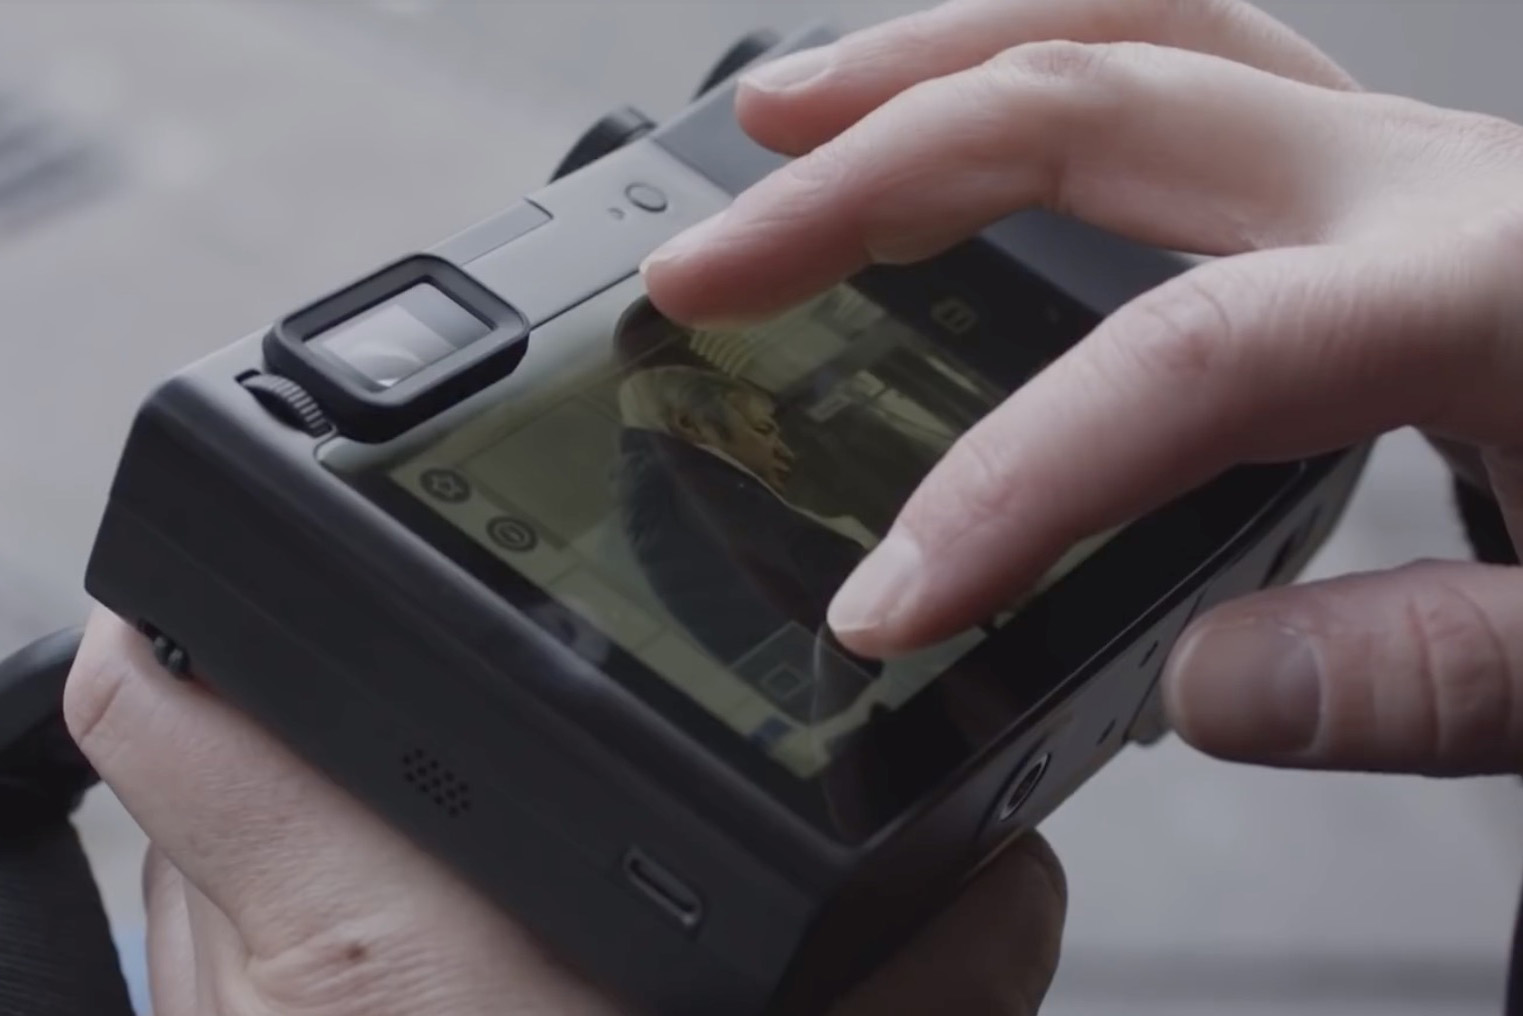 Video: Zeiss shows hands-on footage of its ZX1 camera with